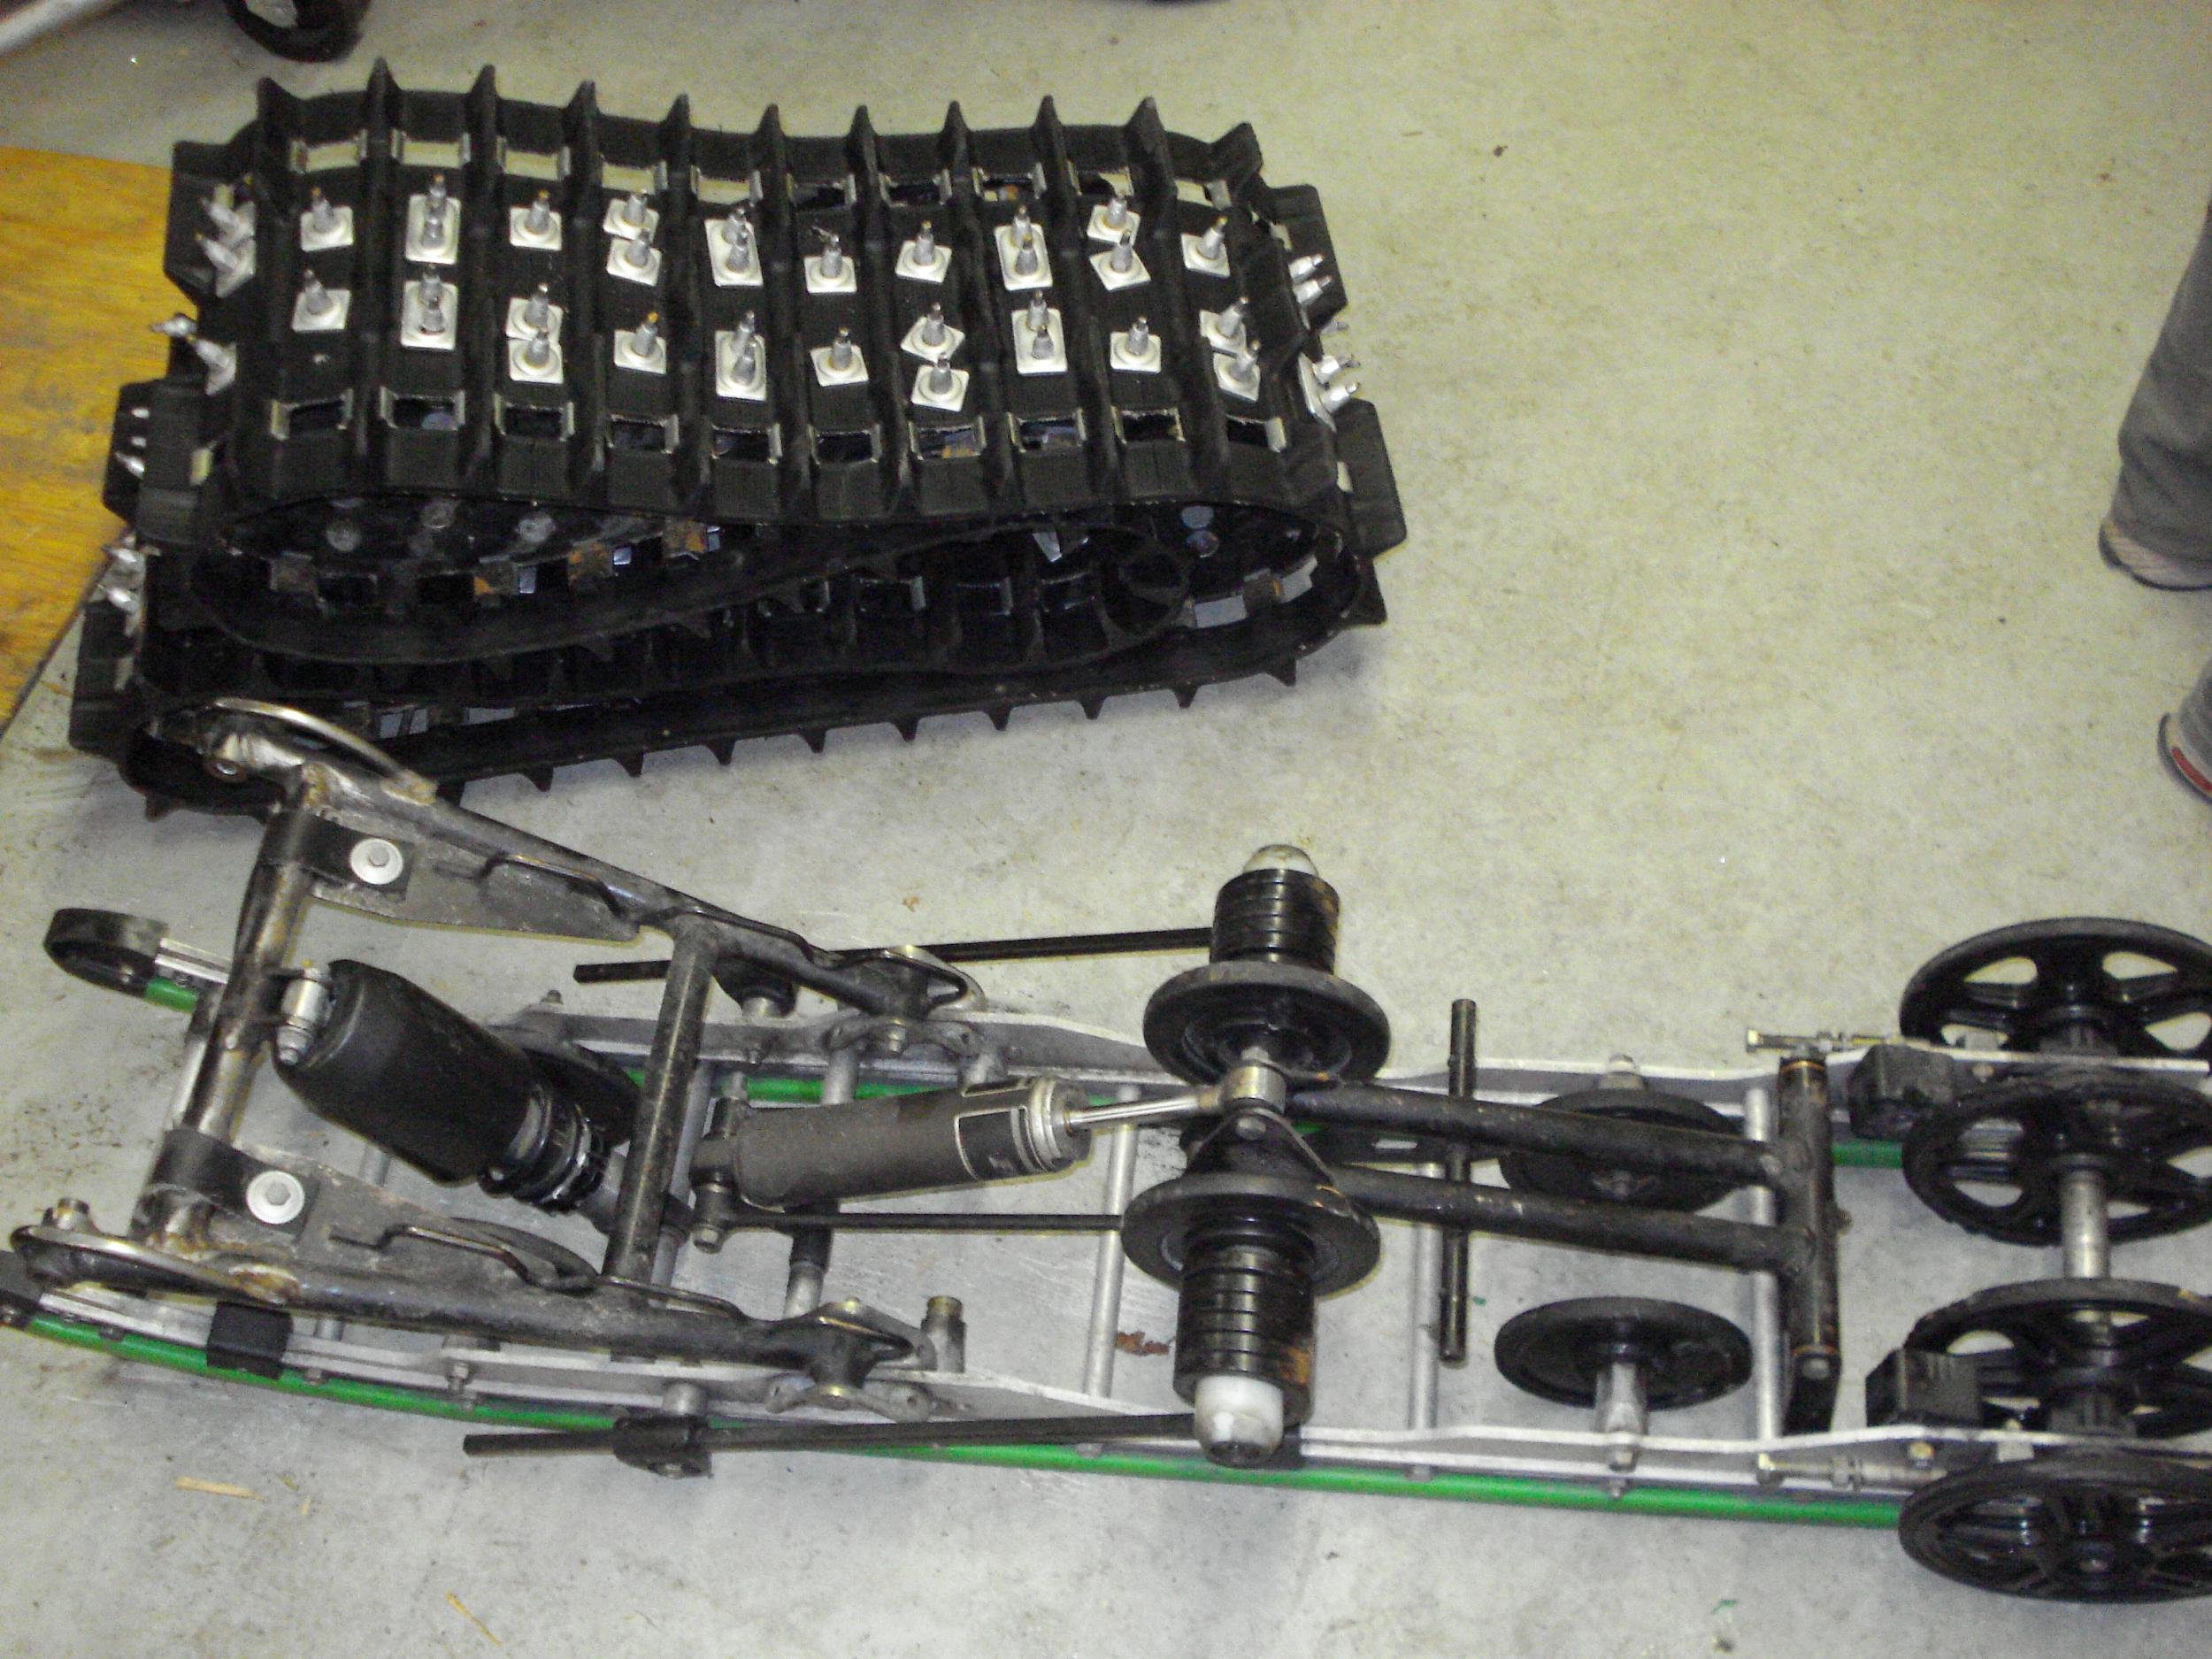 2005 F7 sno pro rear suspension-blackberry-1030-119.jpg